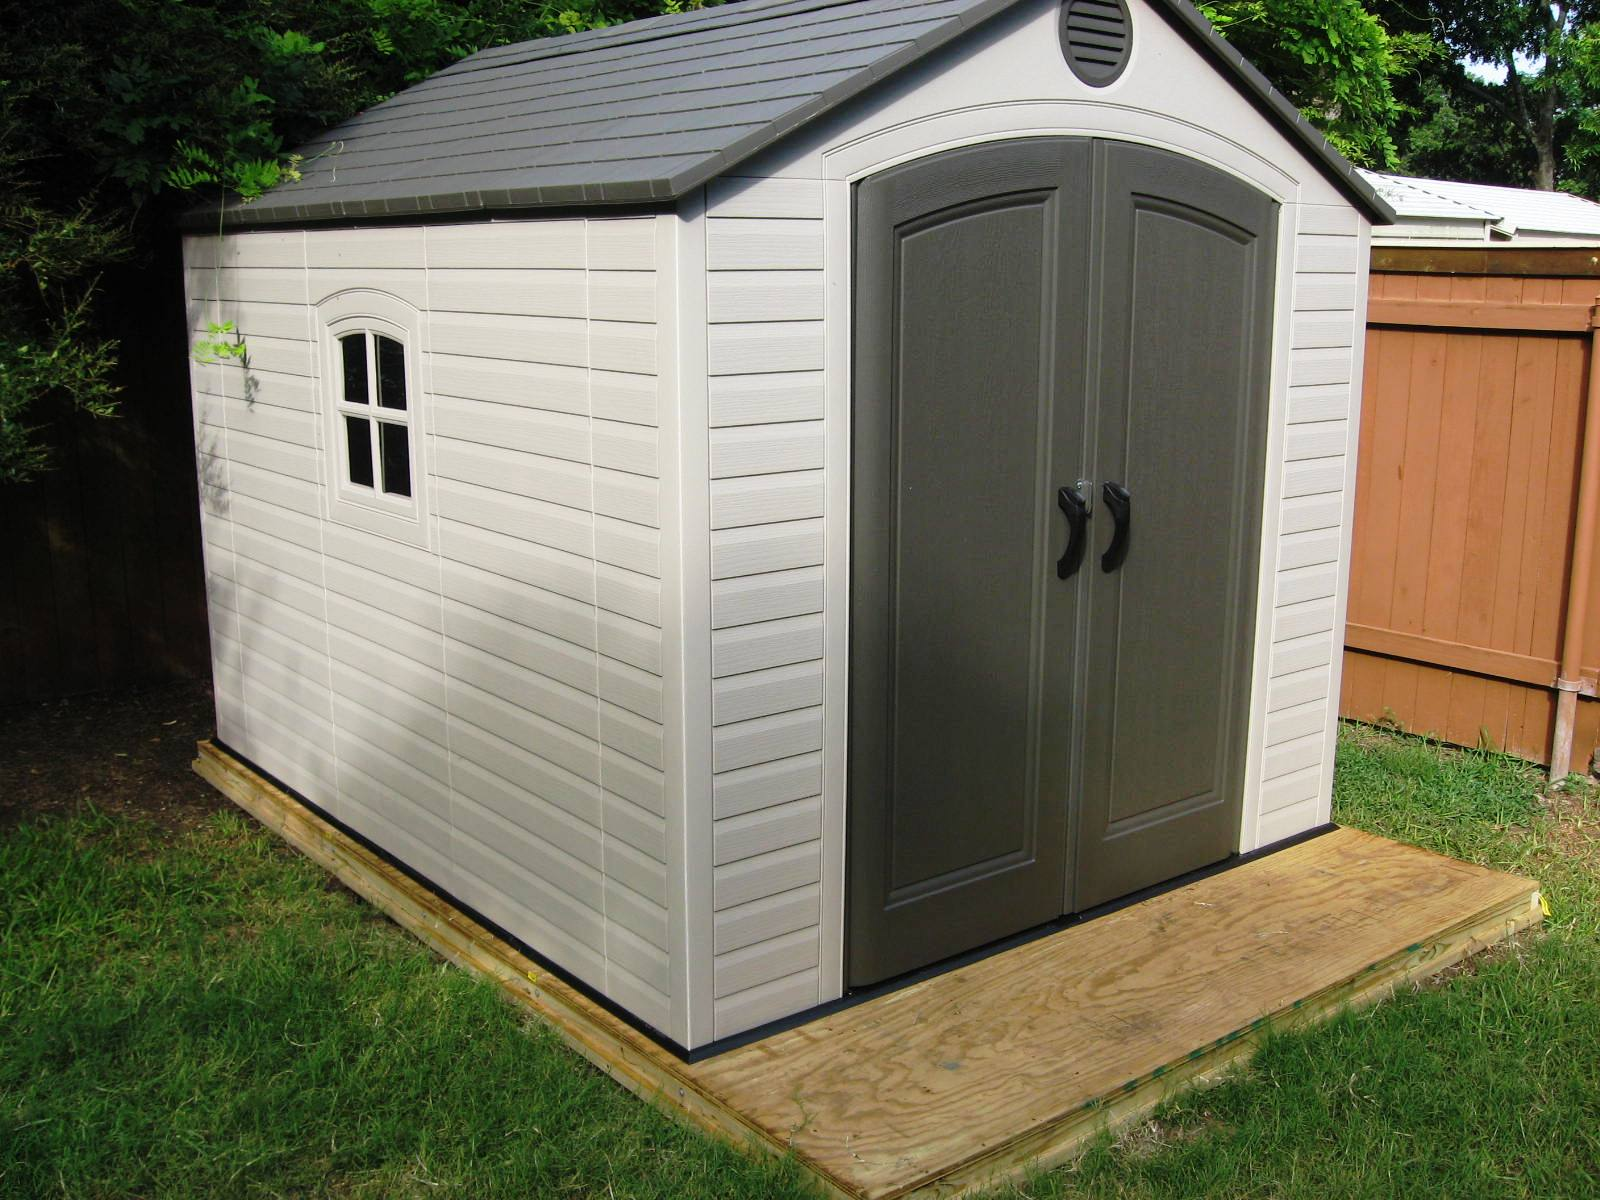 Build Wood Platform Shed Plans build a shed diy | *)^ DiY ShEd PlAnS ...